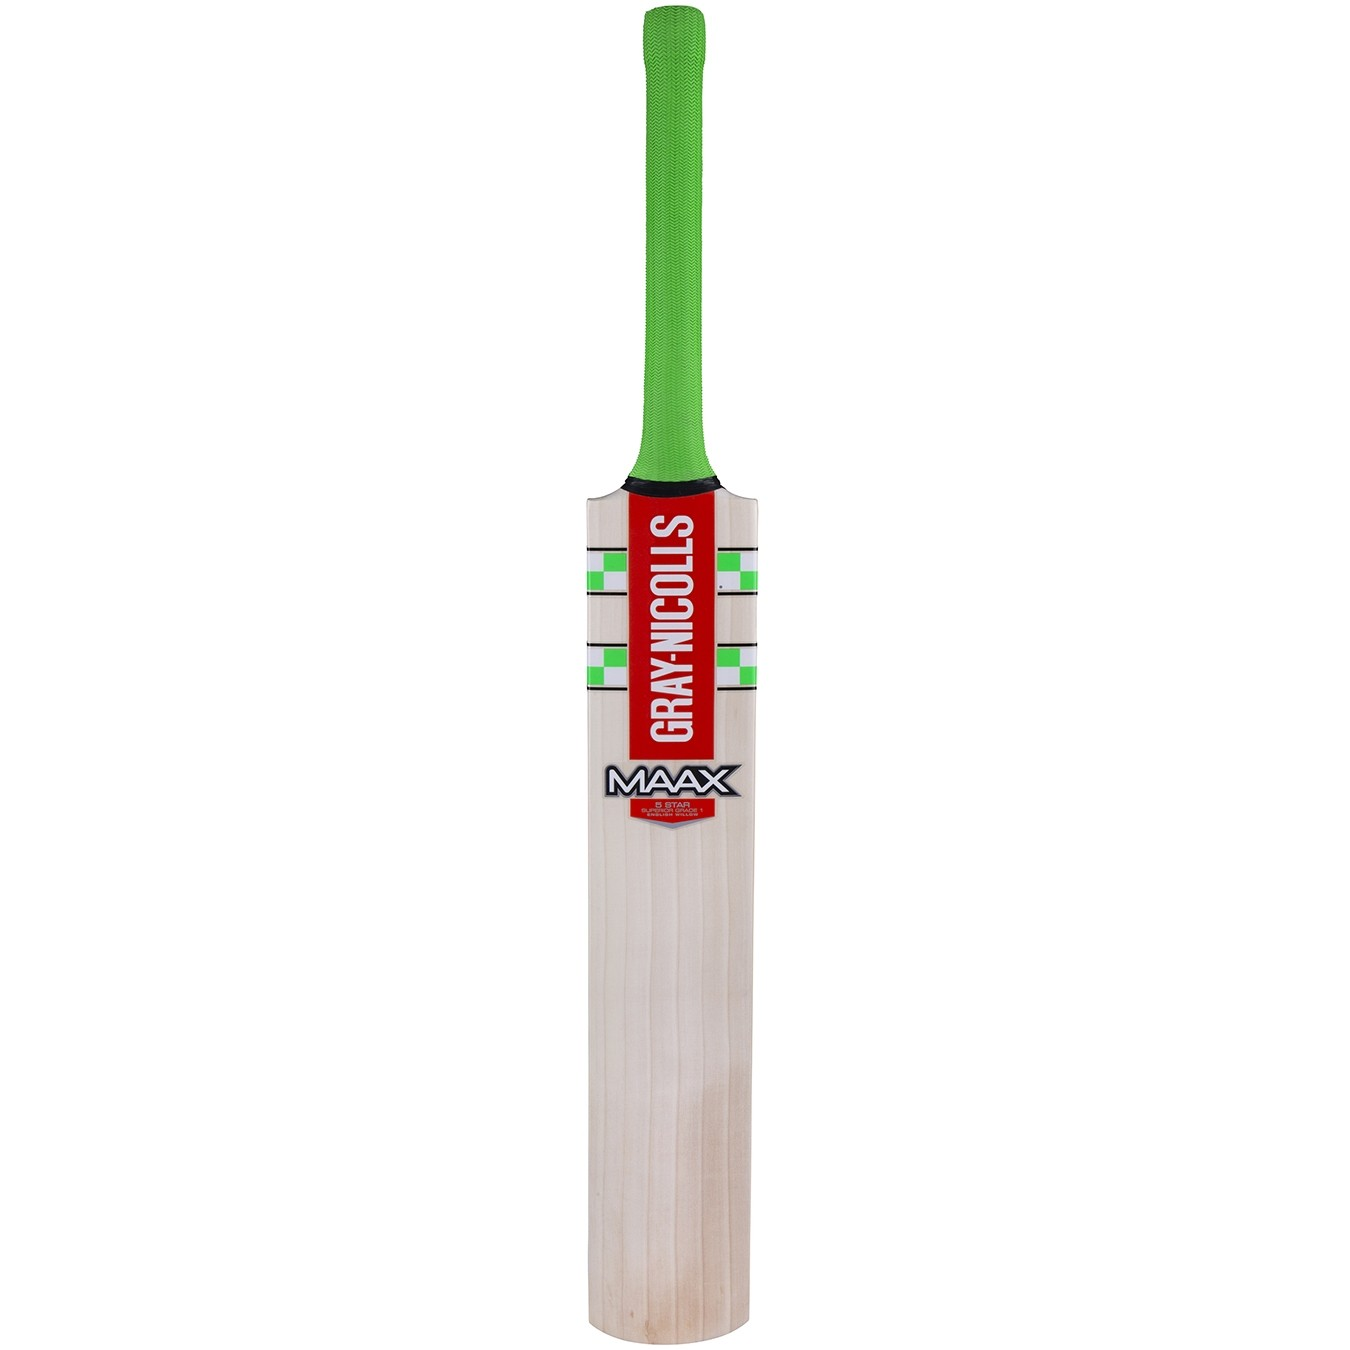 2021 Gray Nicolls Maax 5 Star Cricket Bat